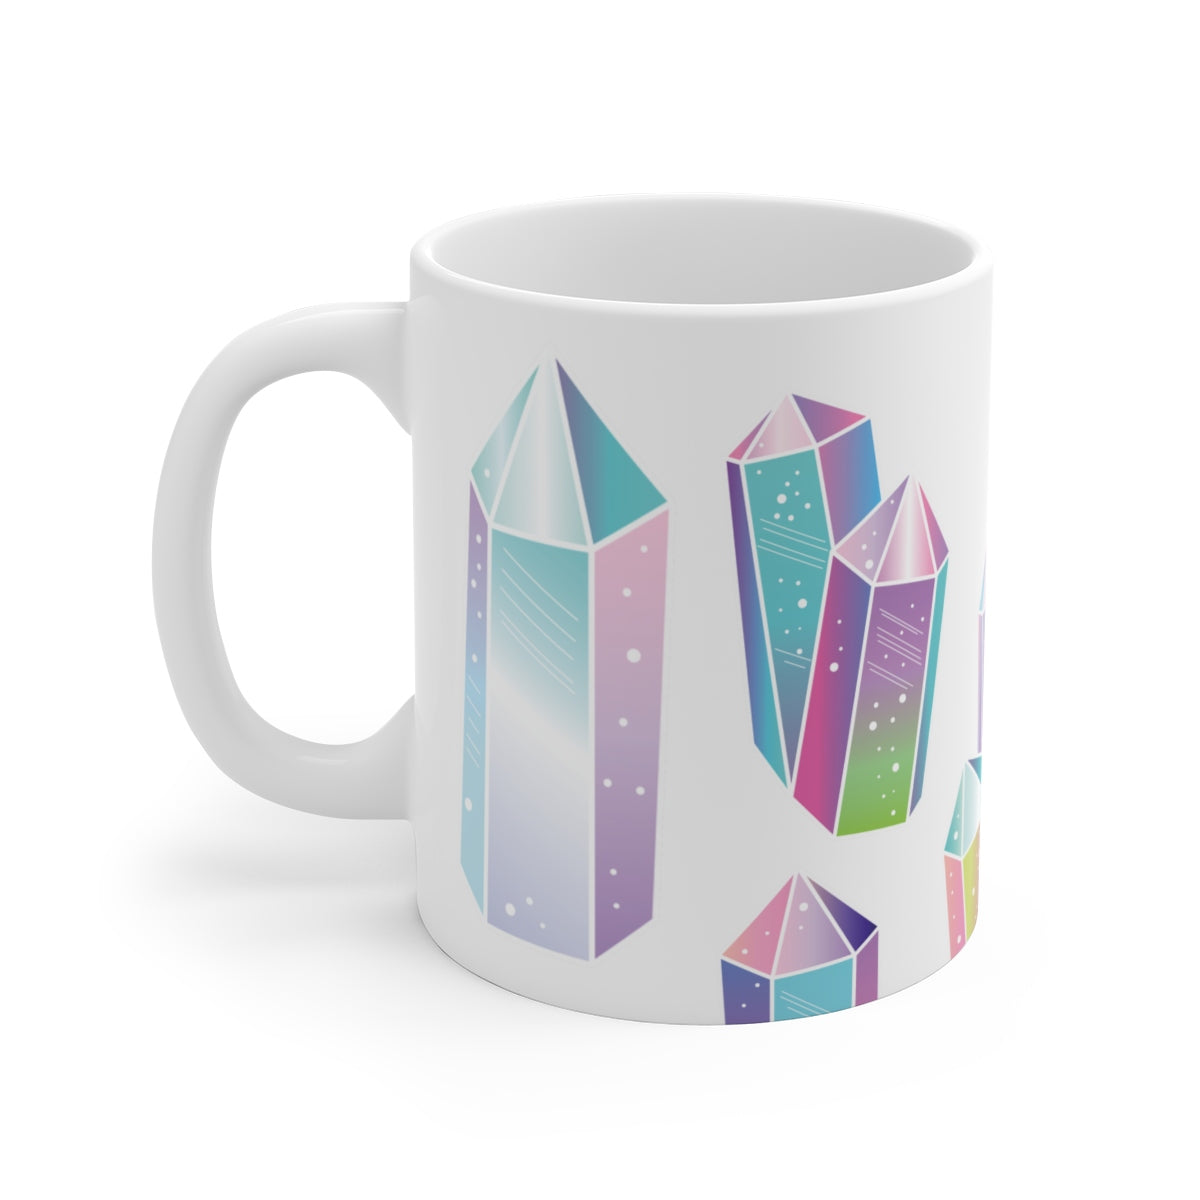 The Crystal Mug